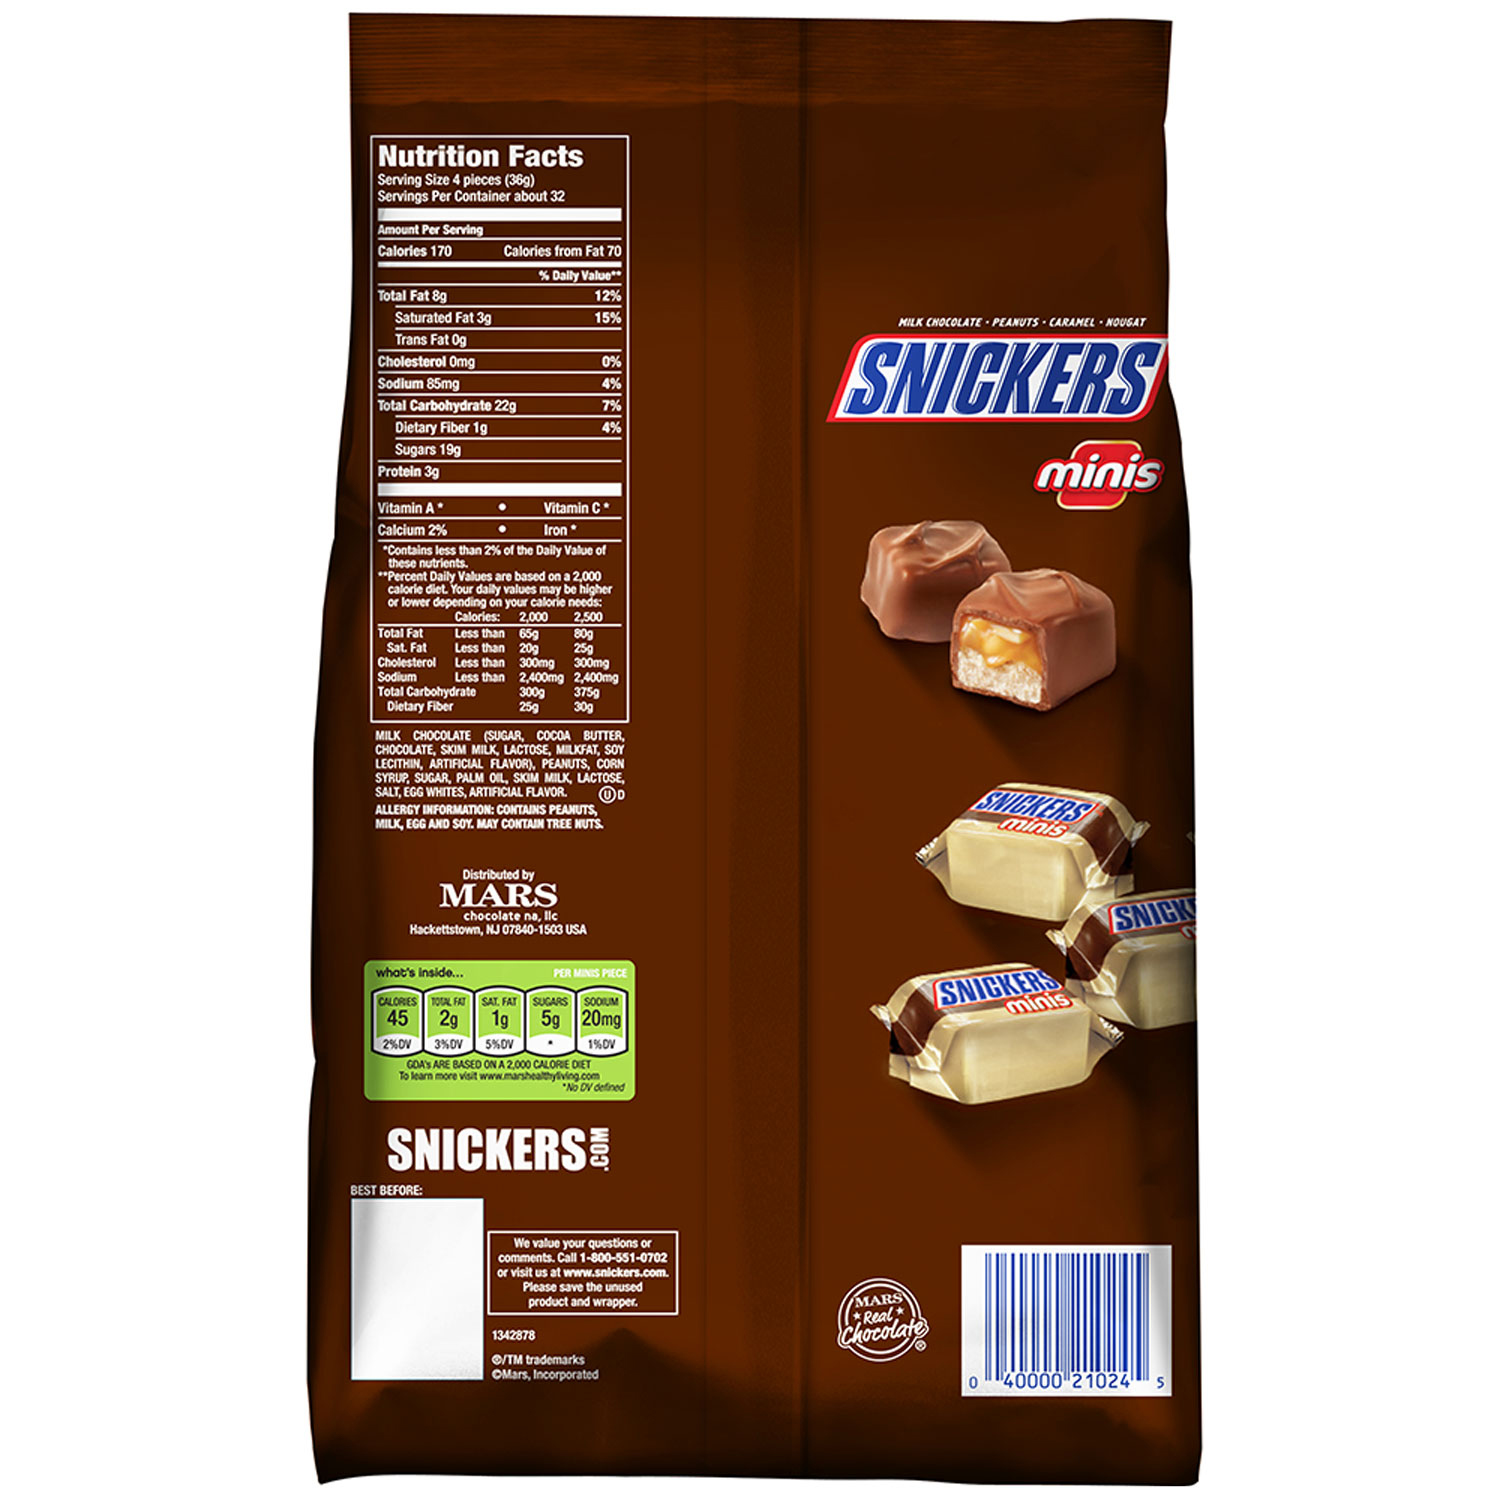 King size Snickers give you more of your favorite candy bar in every package! Snickers is one of the most popular confections available today. This savory confection was originally introduced by the Mars company back in the s. The name was inspired by the Mars family's favorite horse.